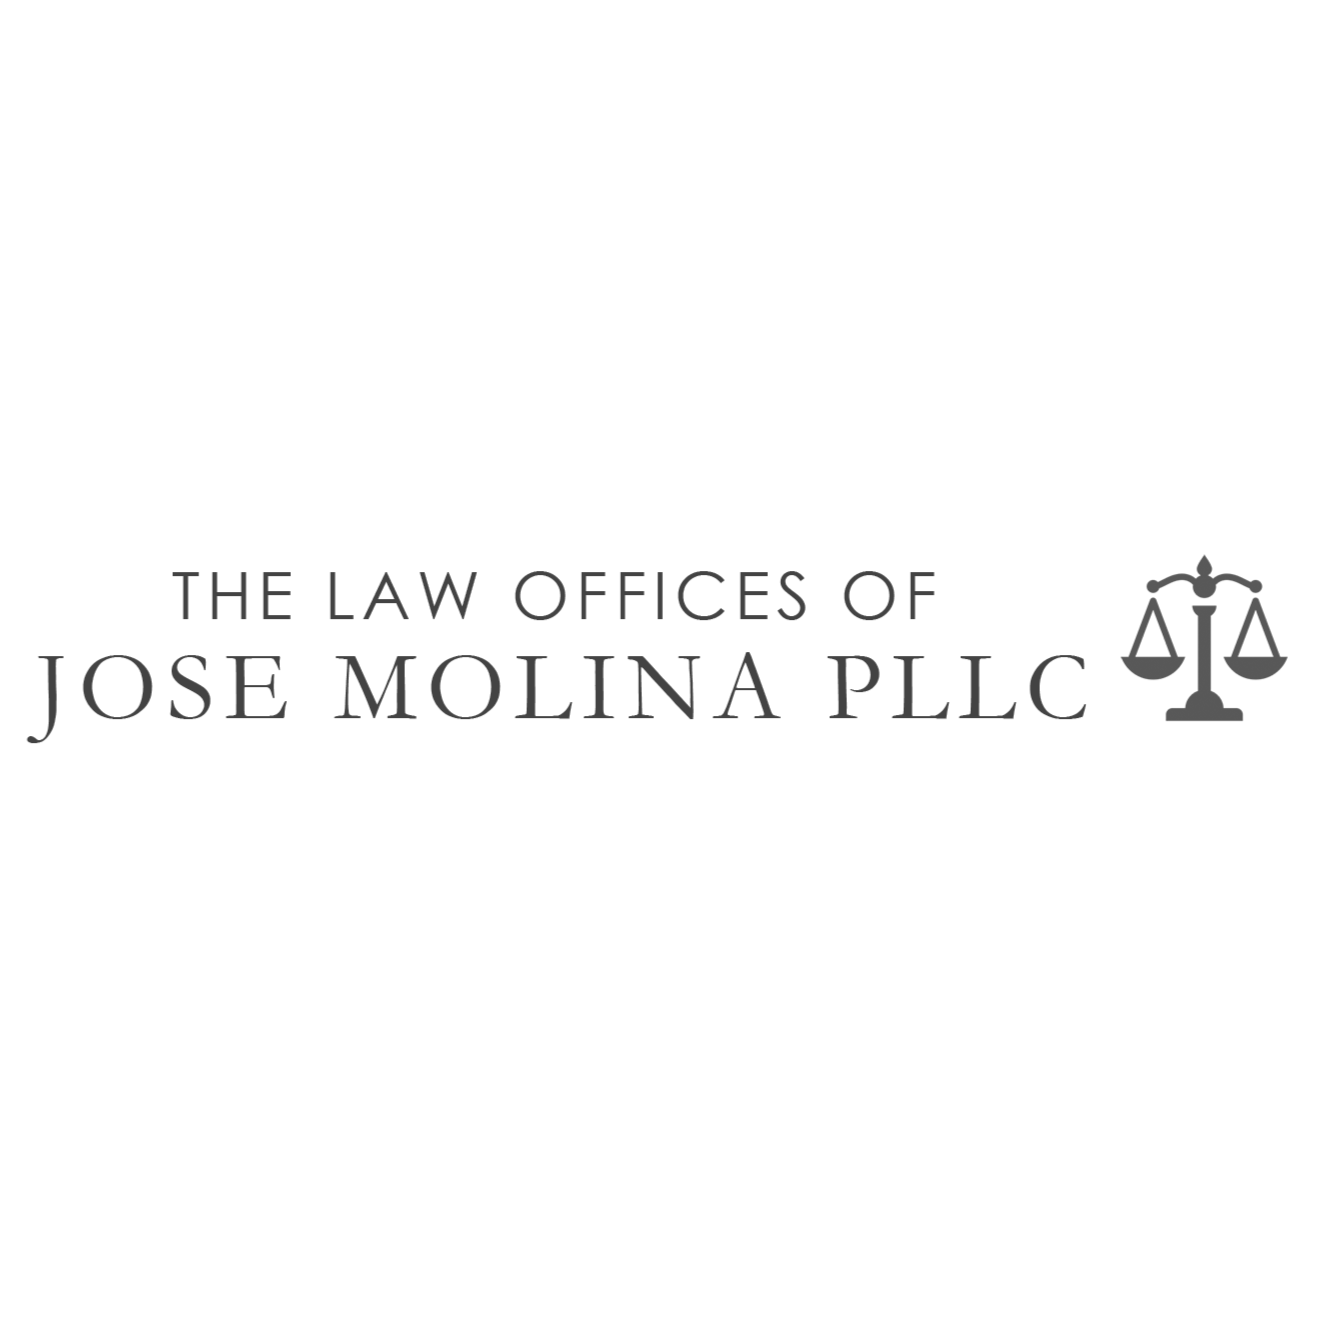 The Law Offices of Jose Molina PLLC